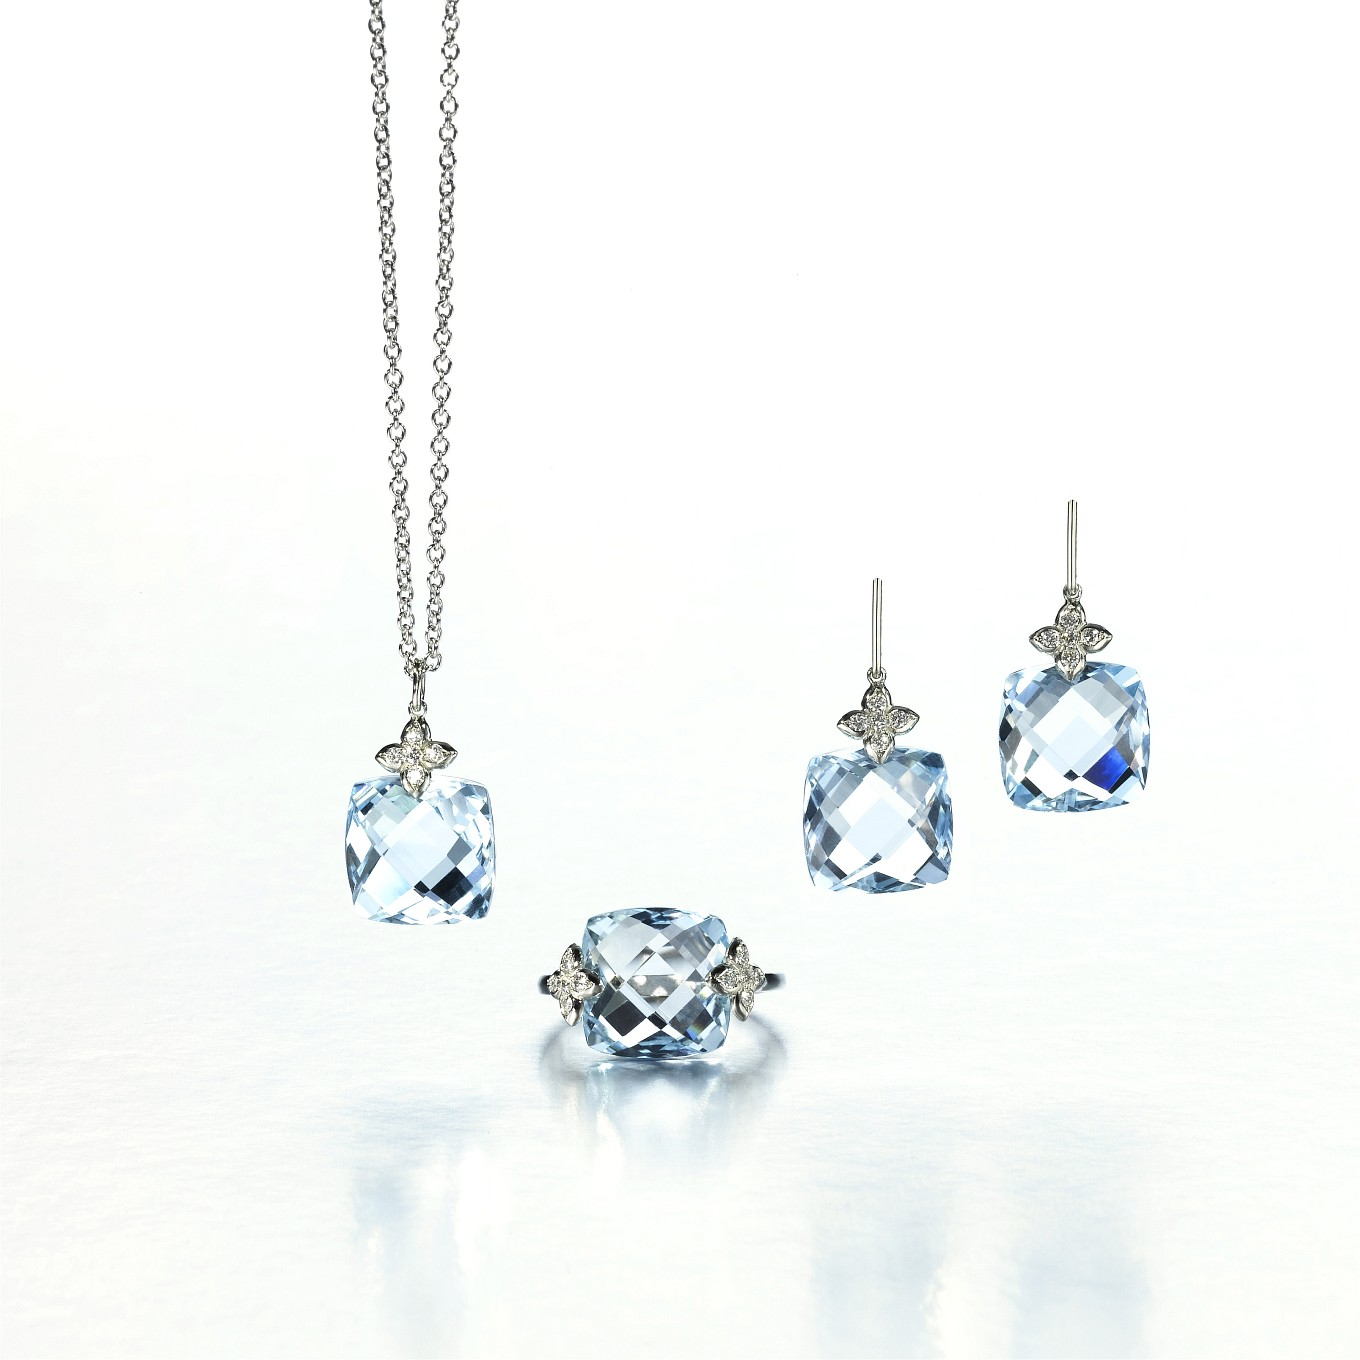 Blue Topaz chequerboard & diamond Sevilla pendant & ring in 18k white gold